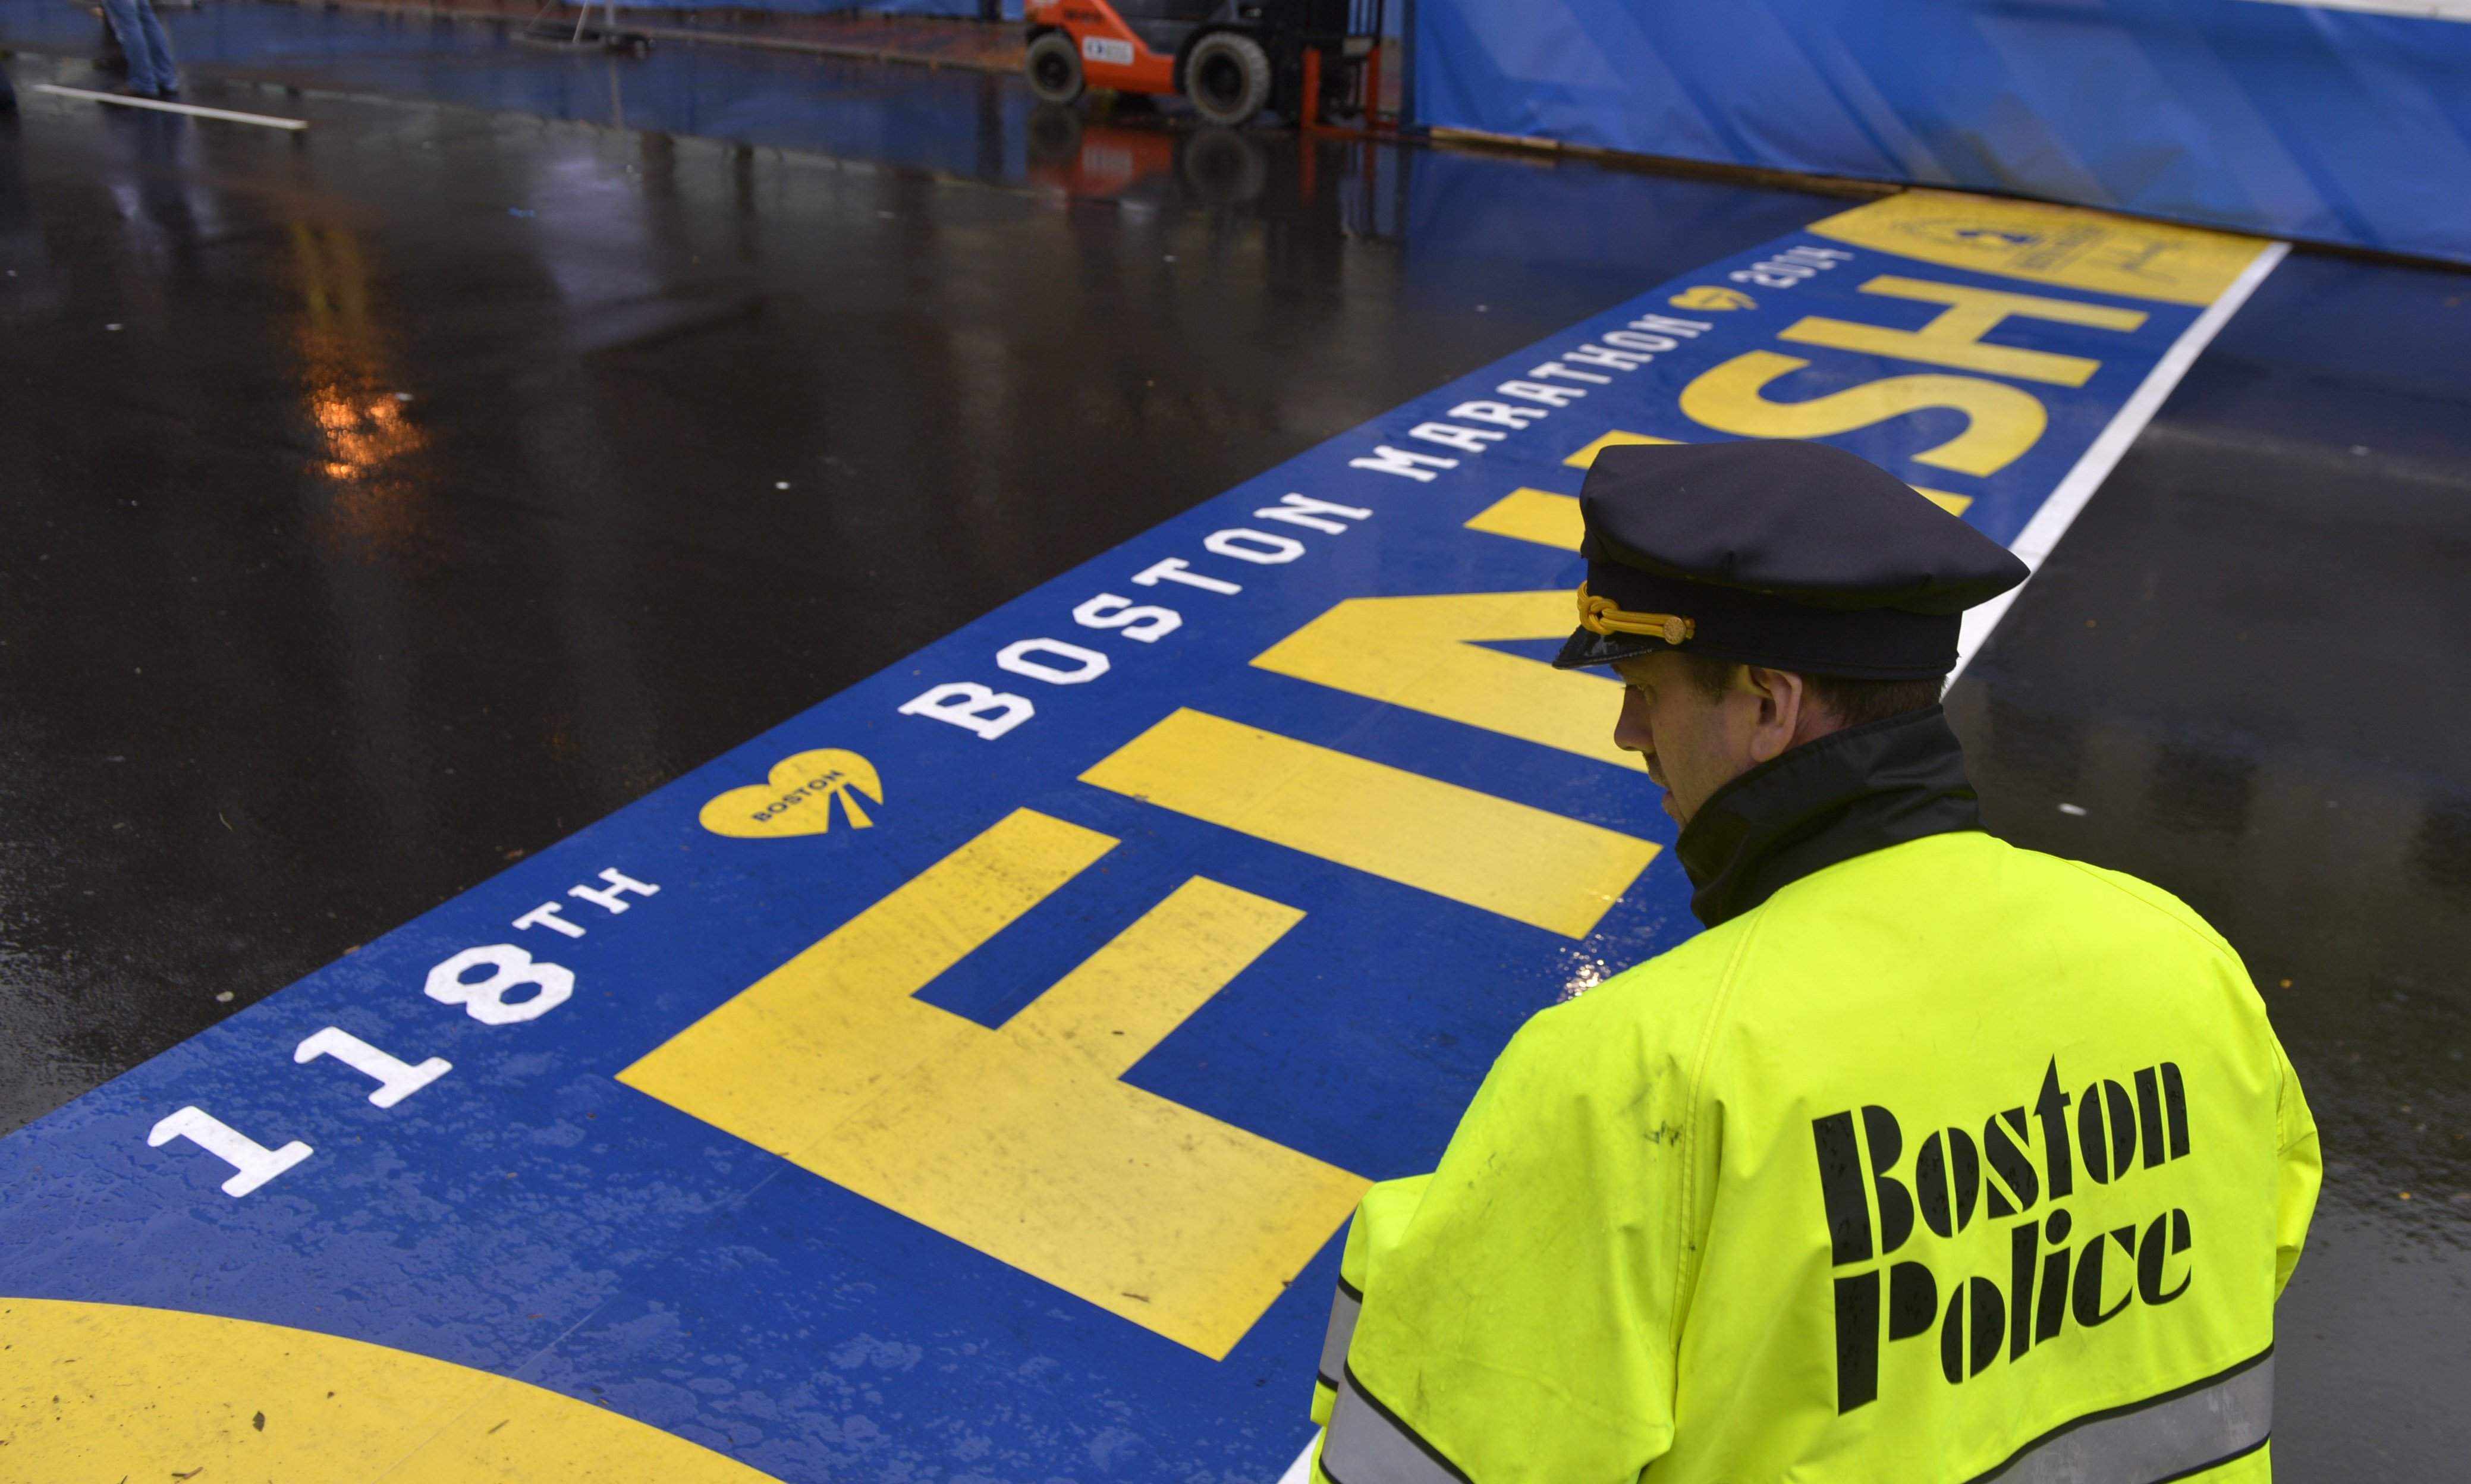 A policeman stands guard during a ceremony commemorating the first anniversary of the Boston Marathon bombings in Boston, on April 15, 2014.